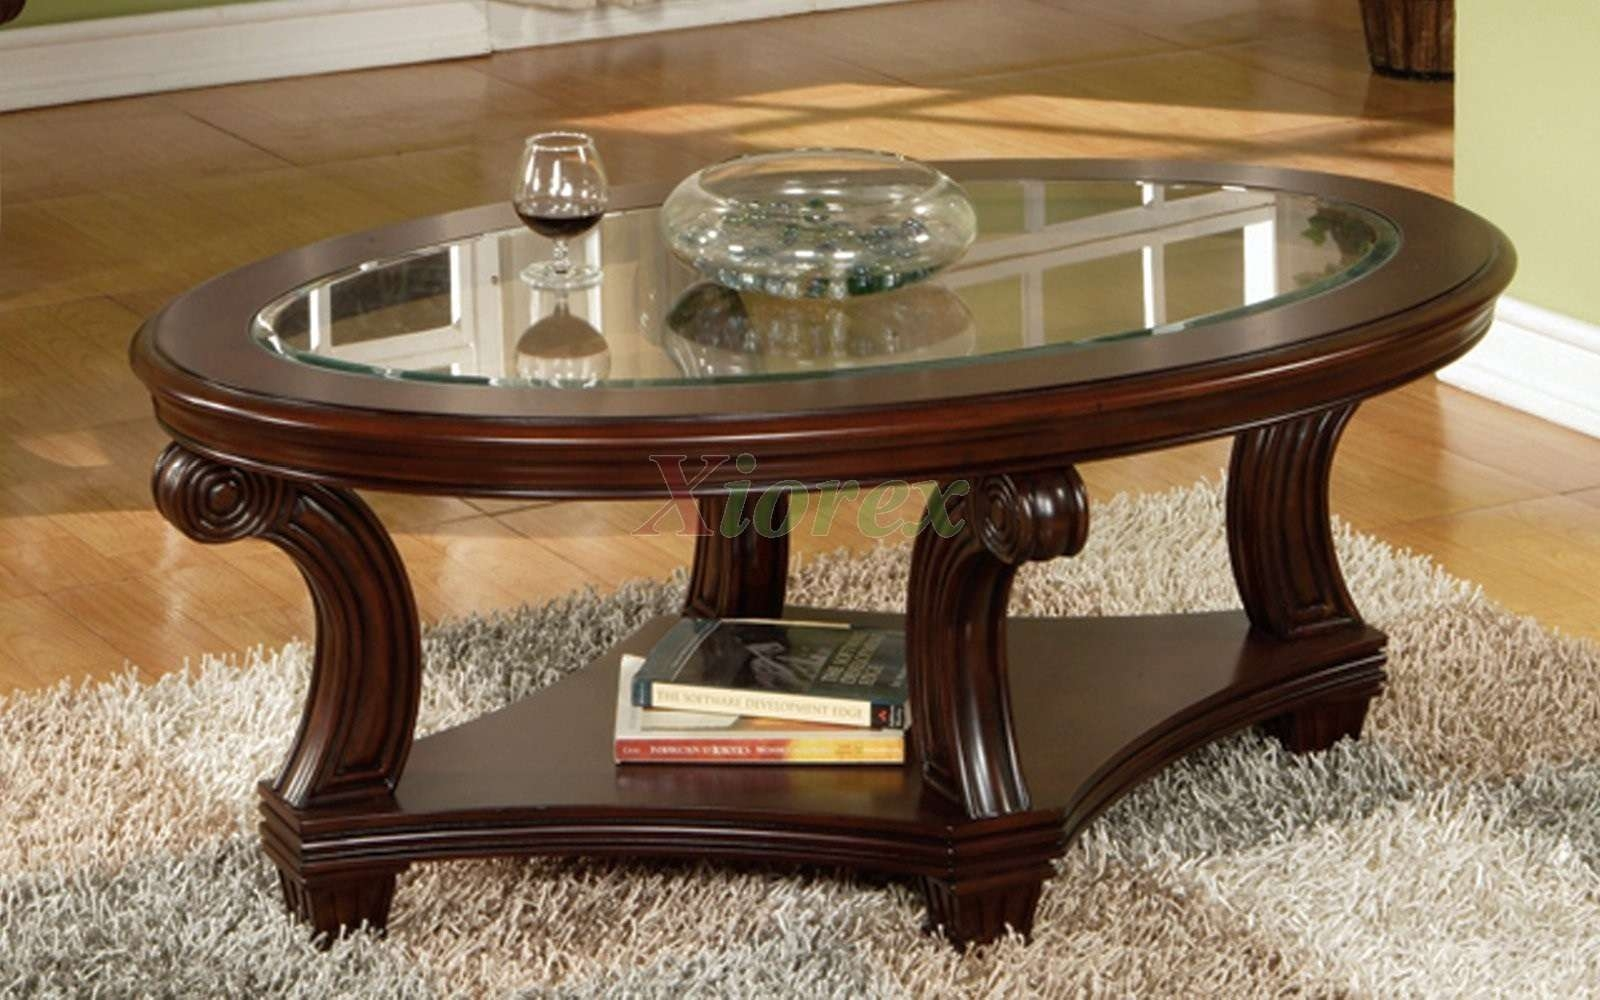 Antique Oval Coffee Table With Glass Top Elegant – Oval Coffee In Famous Oval Glass And Wood Coffee Tables (View 9 of 20)